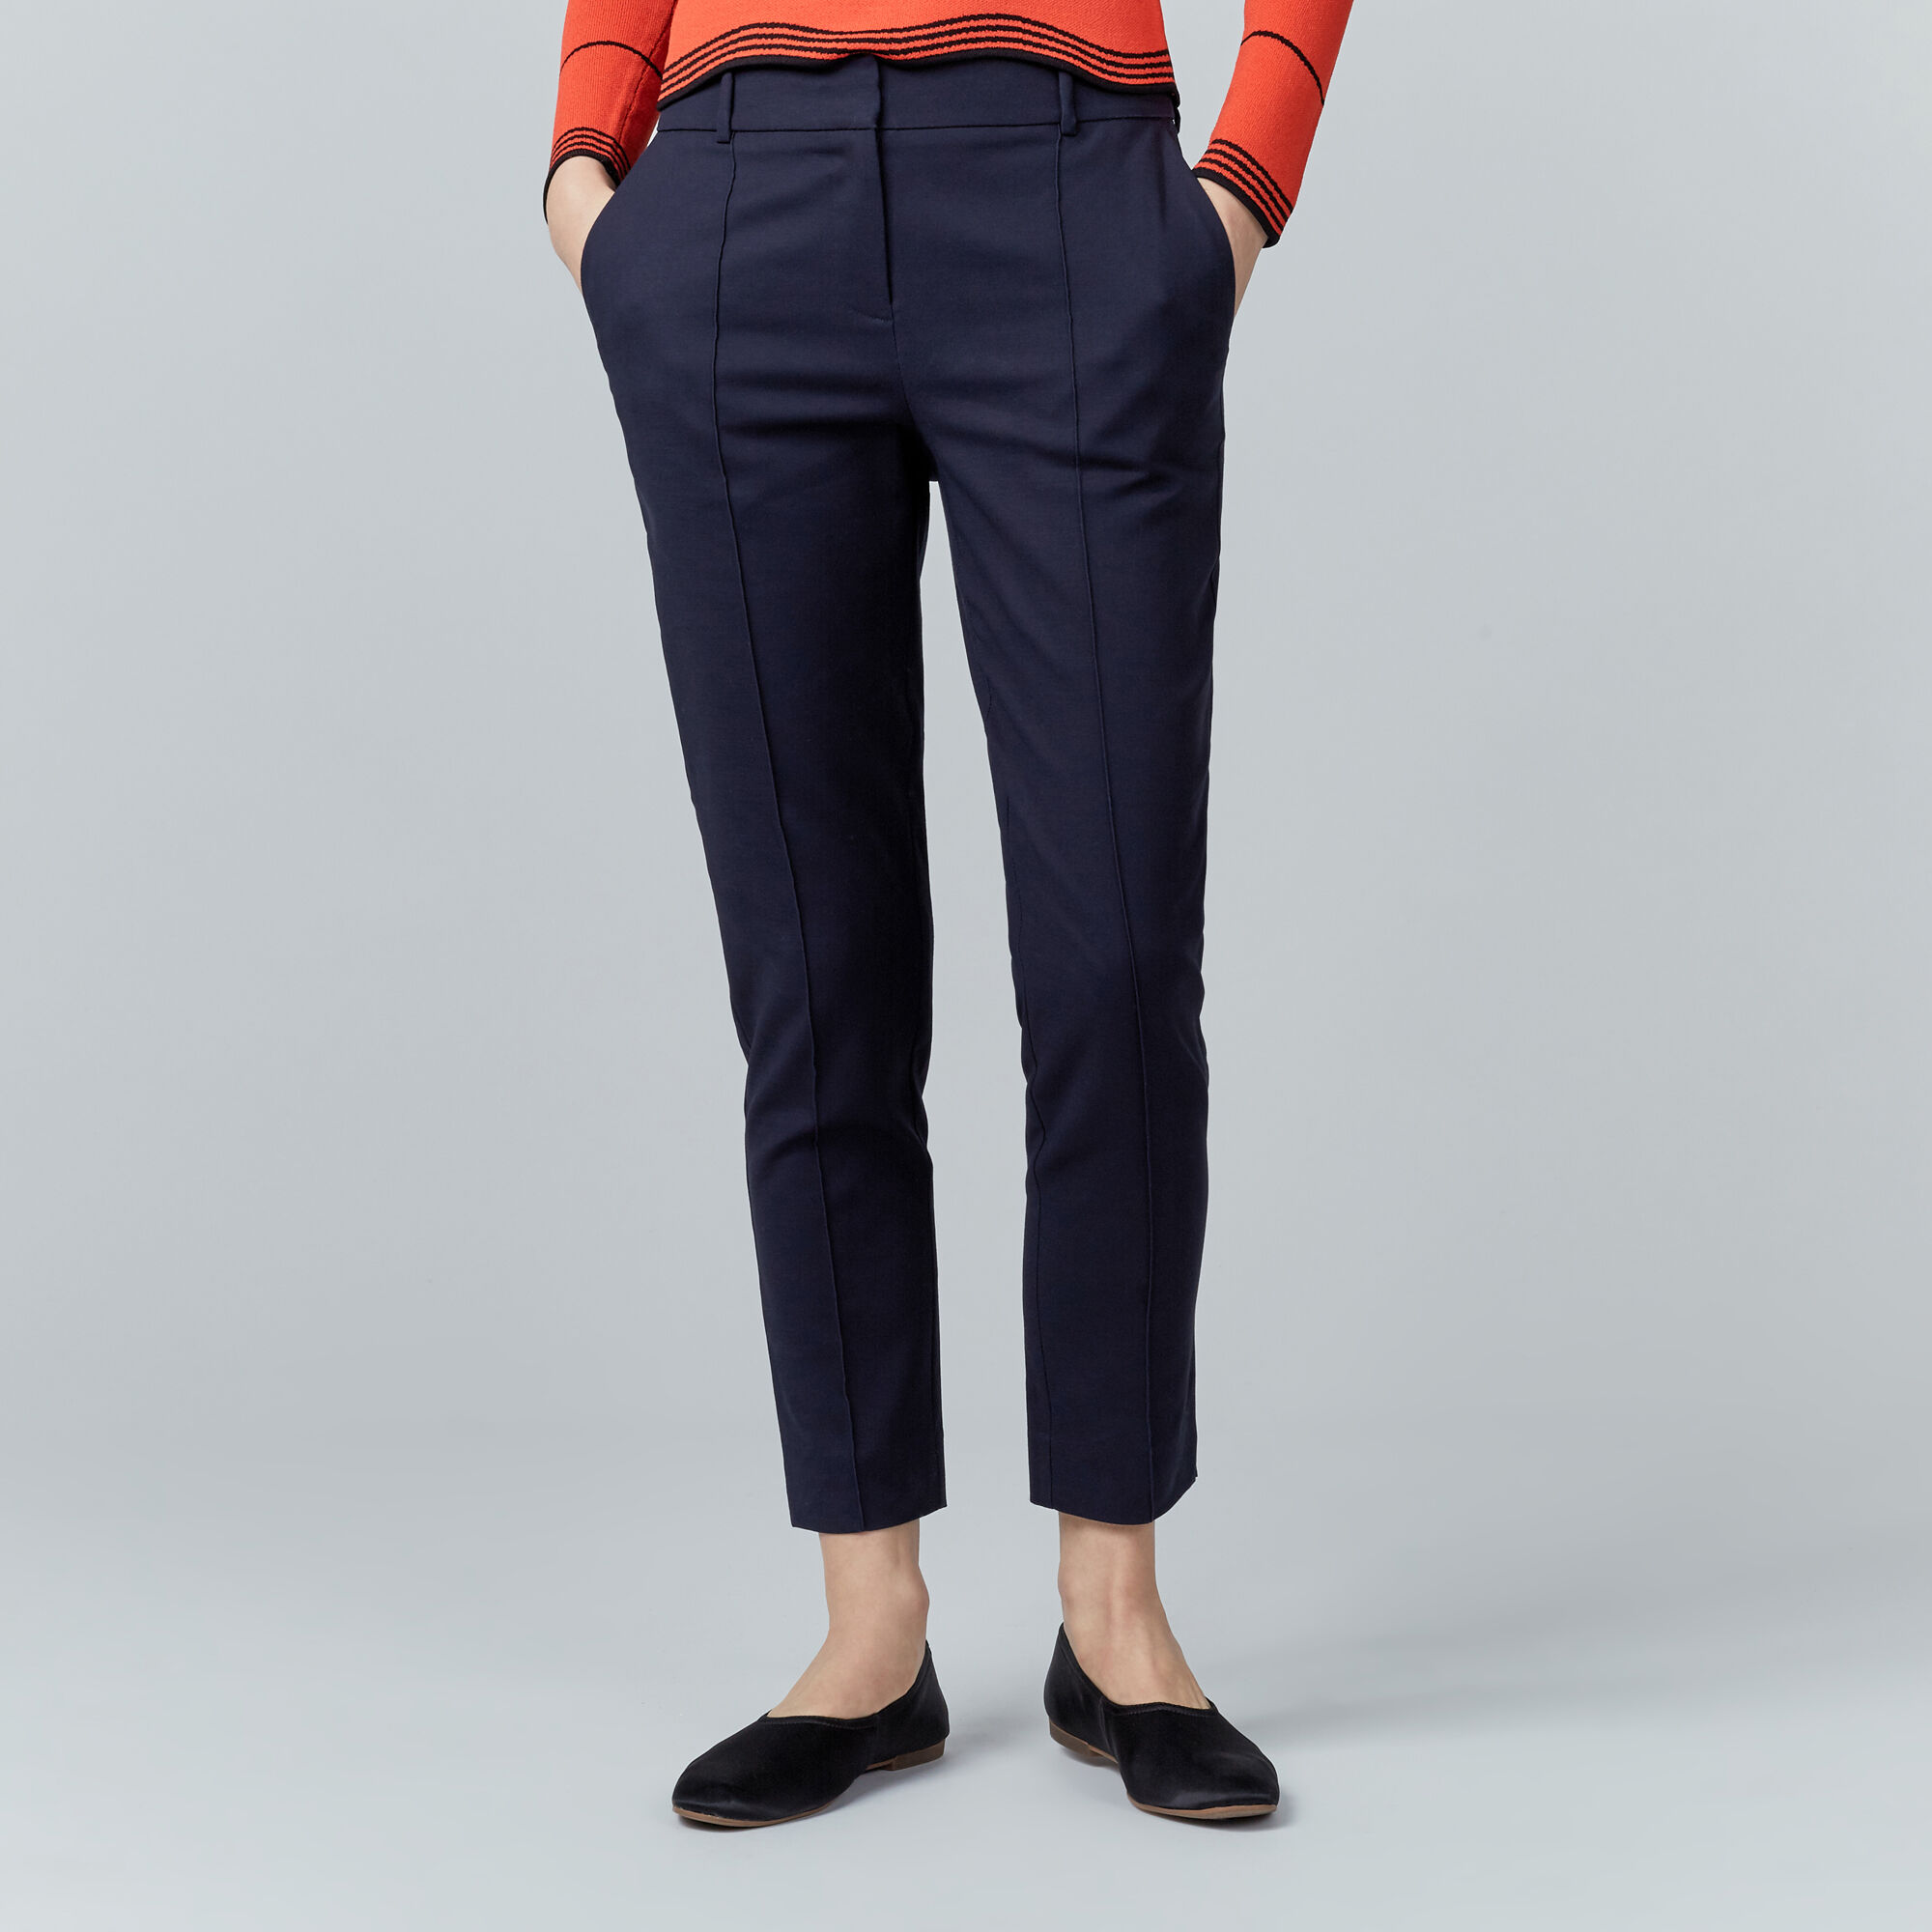 Warehouse, COMPACT COTTON TROUSERS Navy 1